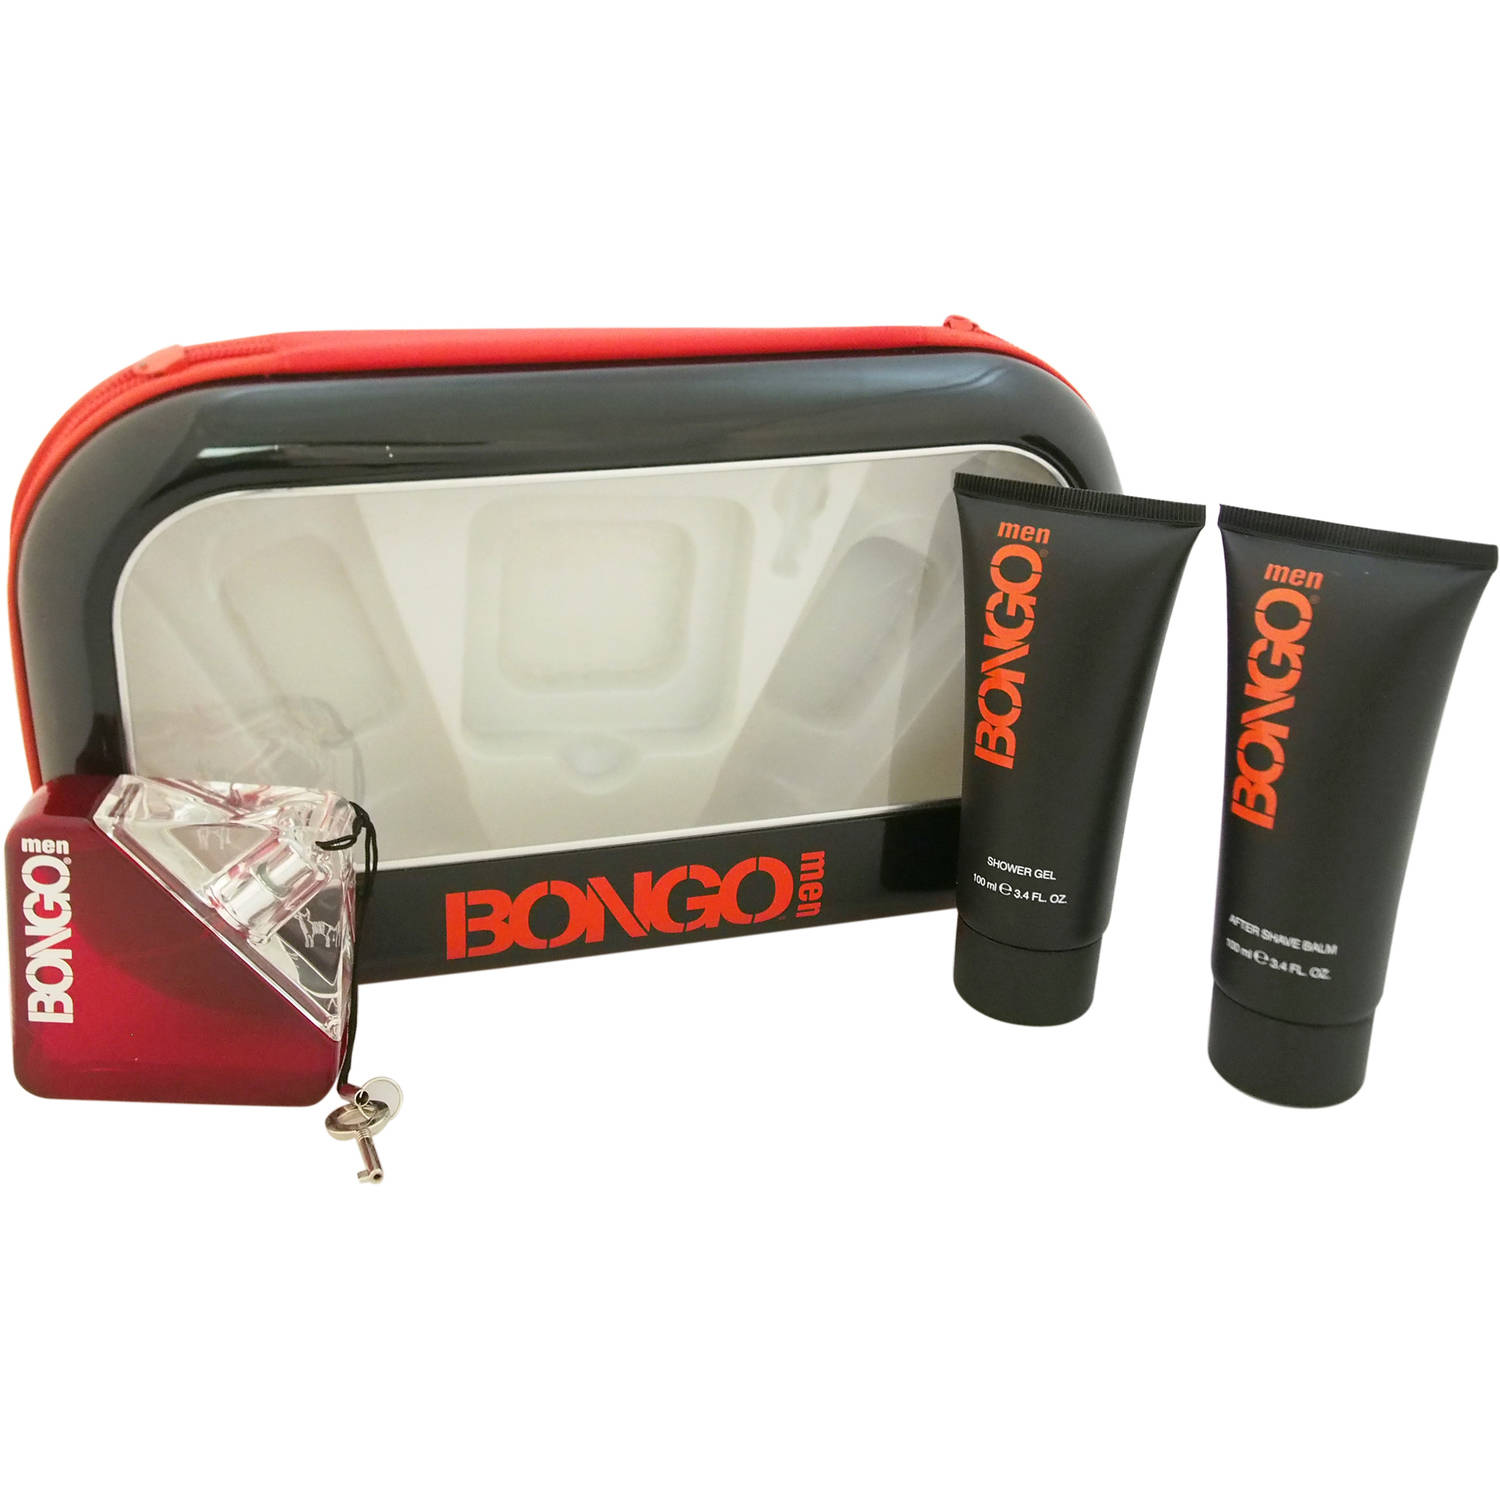 Bongo by First American Brands for Men Gift Set, 3 pc